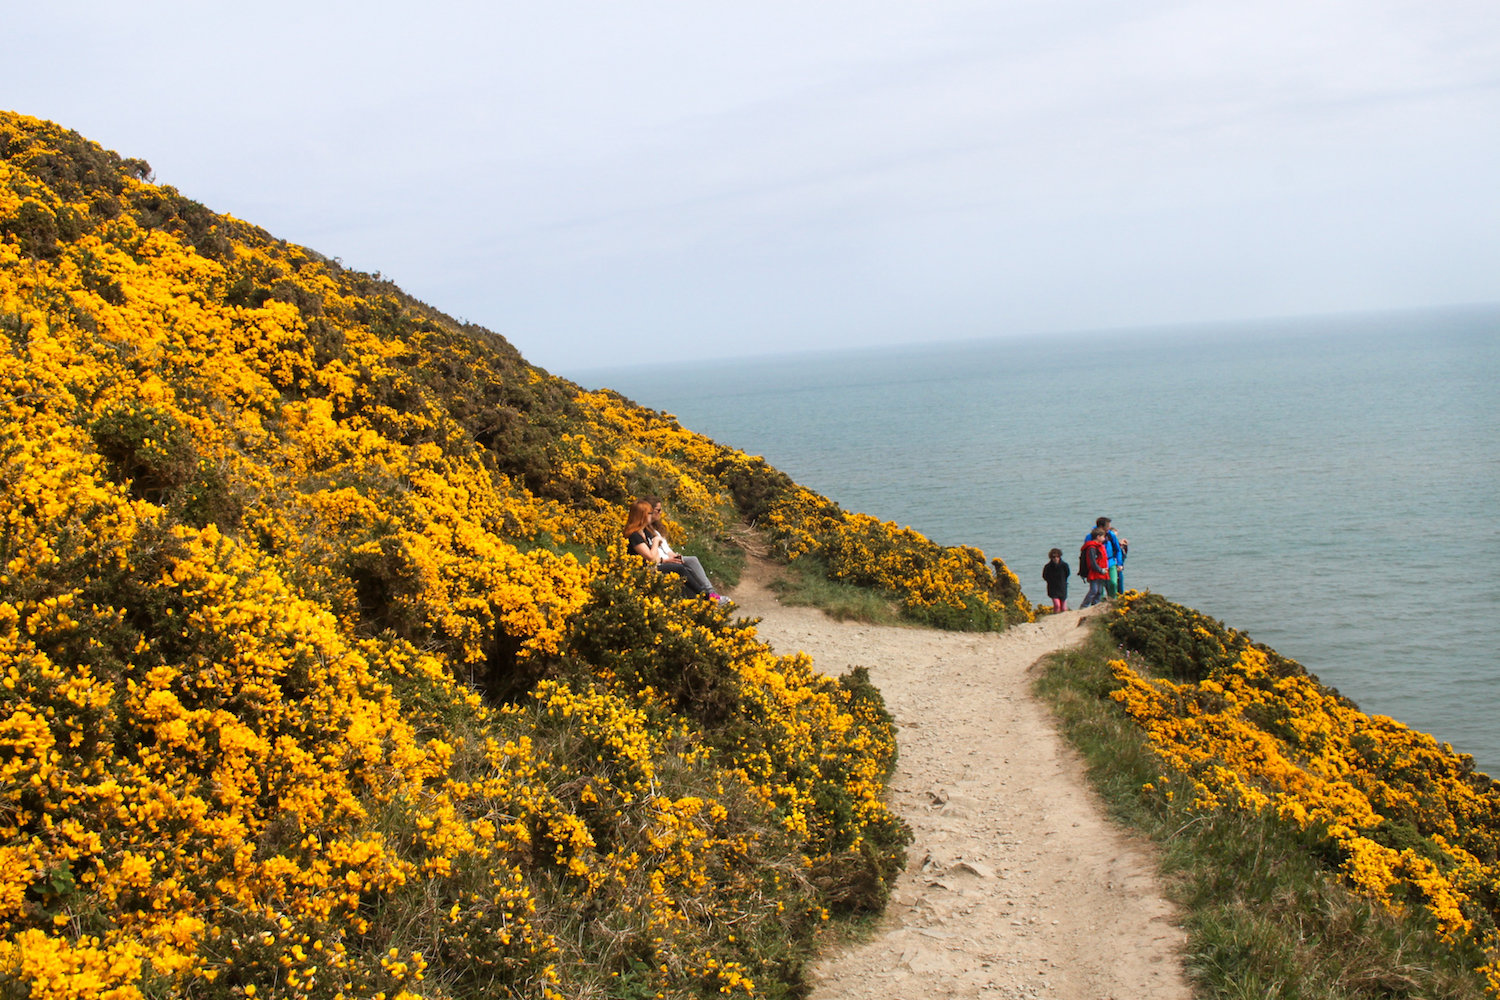 Trail along the cliffs of Howth (Eat Me. Drink Me.)